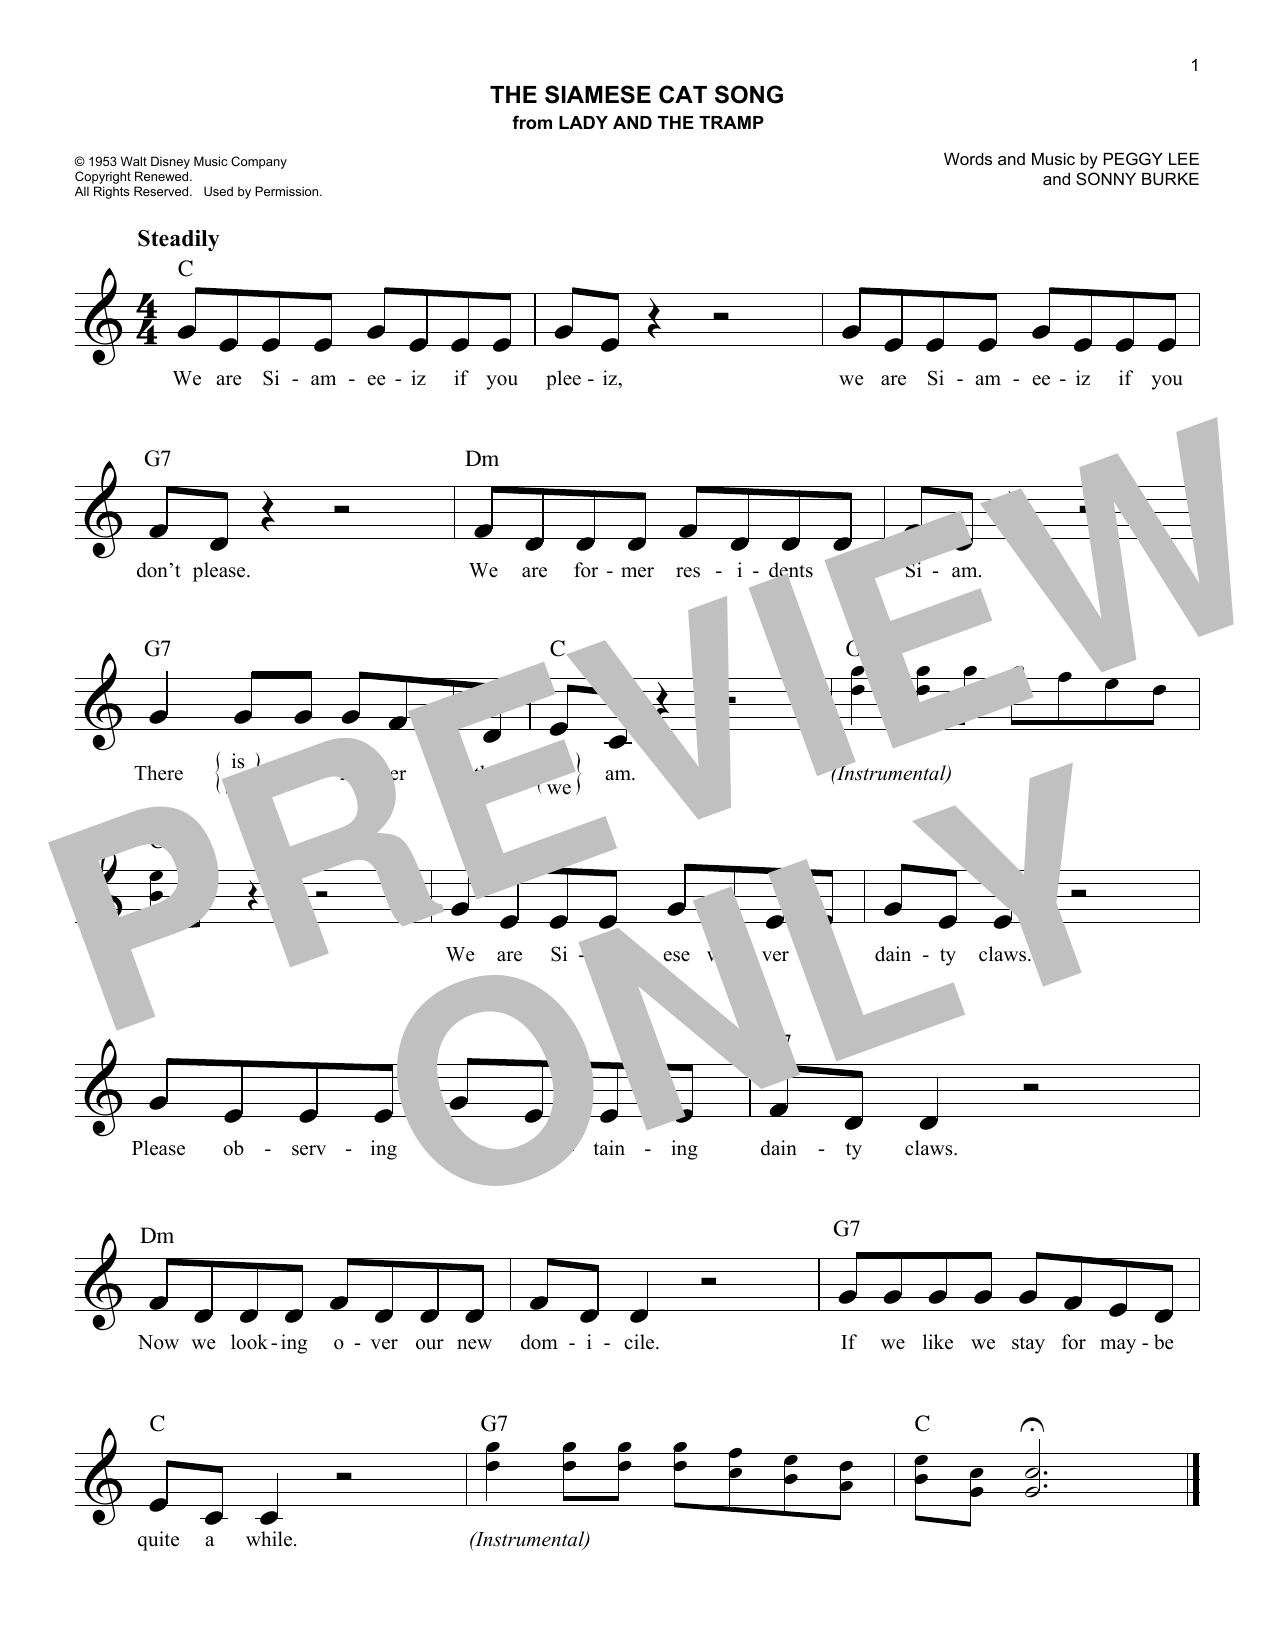 Sonny Burke The Siamese Cat Song (from Lady And The Tramp) sheet music notes and chords. Download Printable PDF.